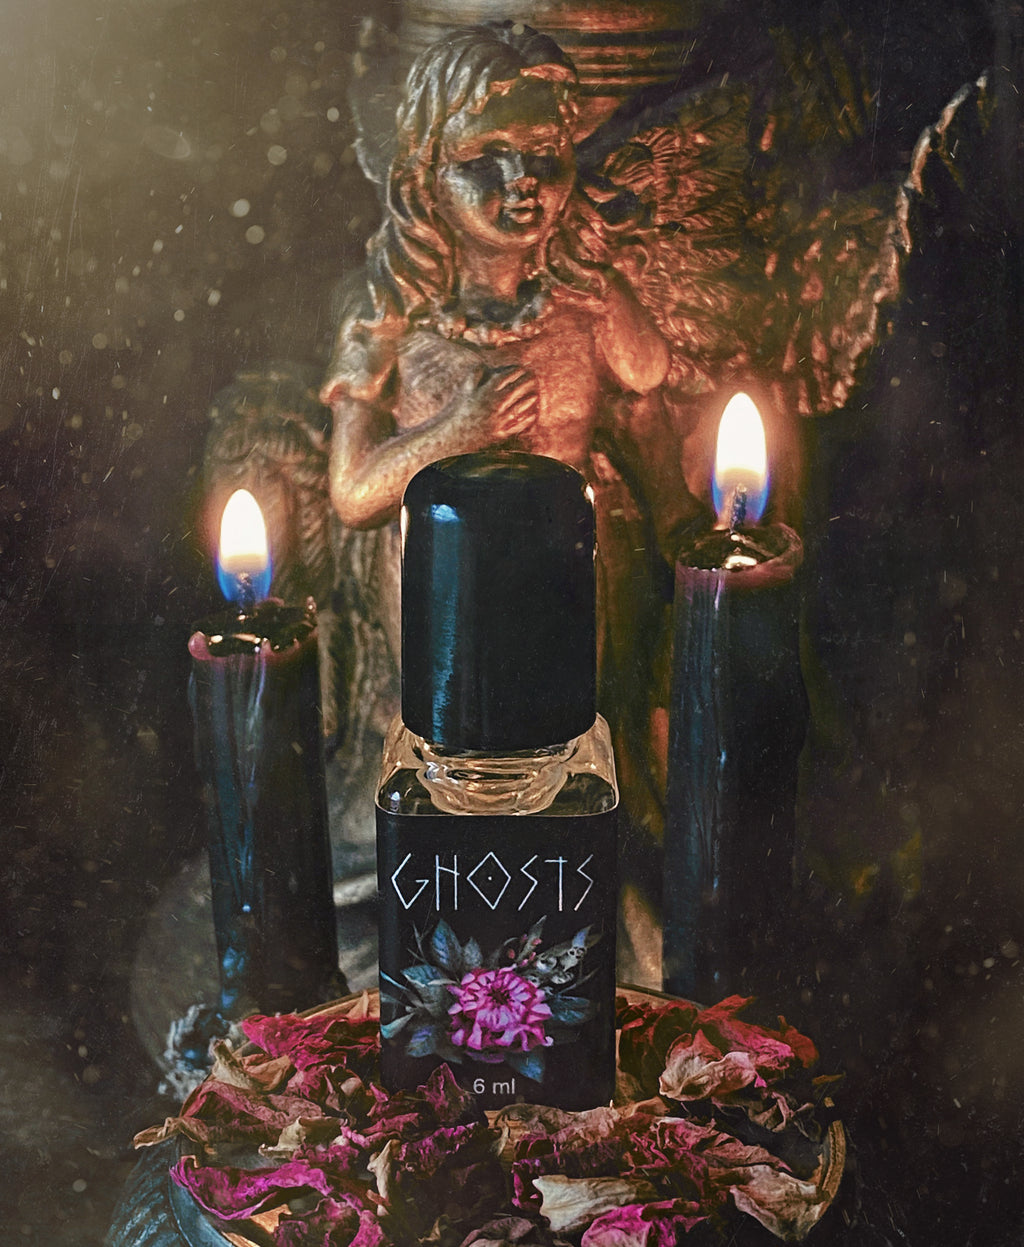 Ghosts :: Perfume Oil